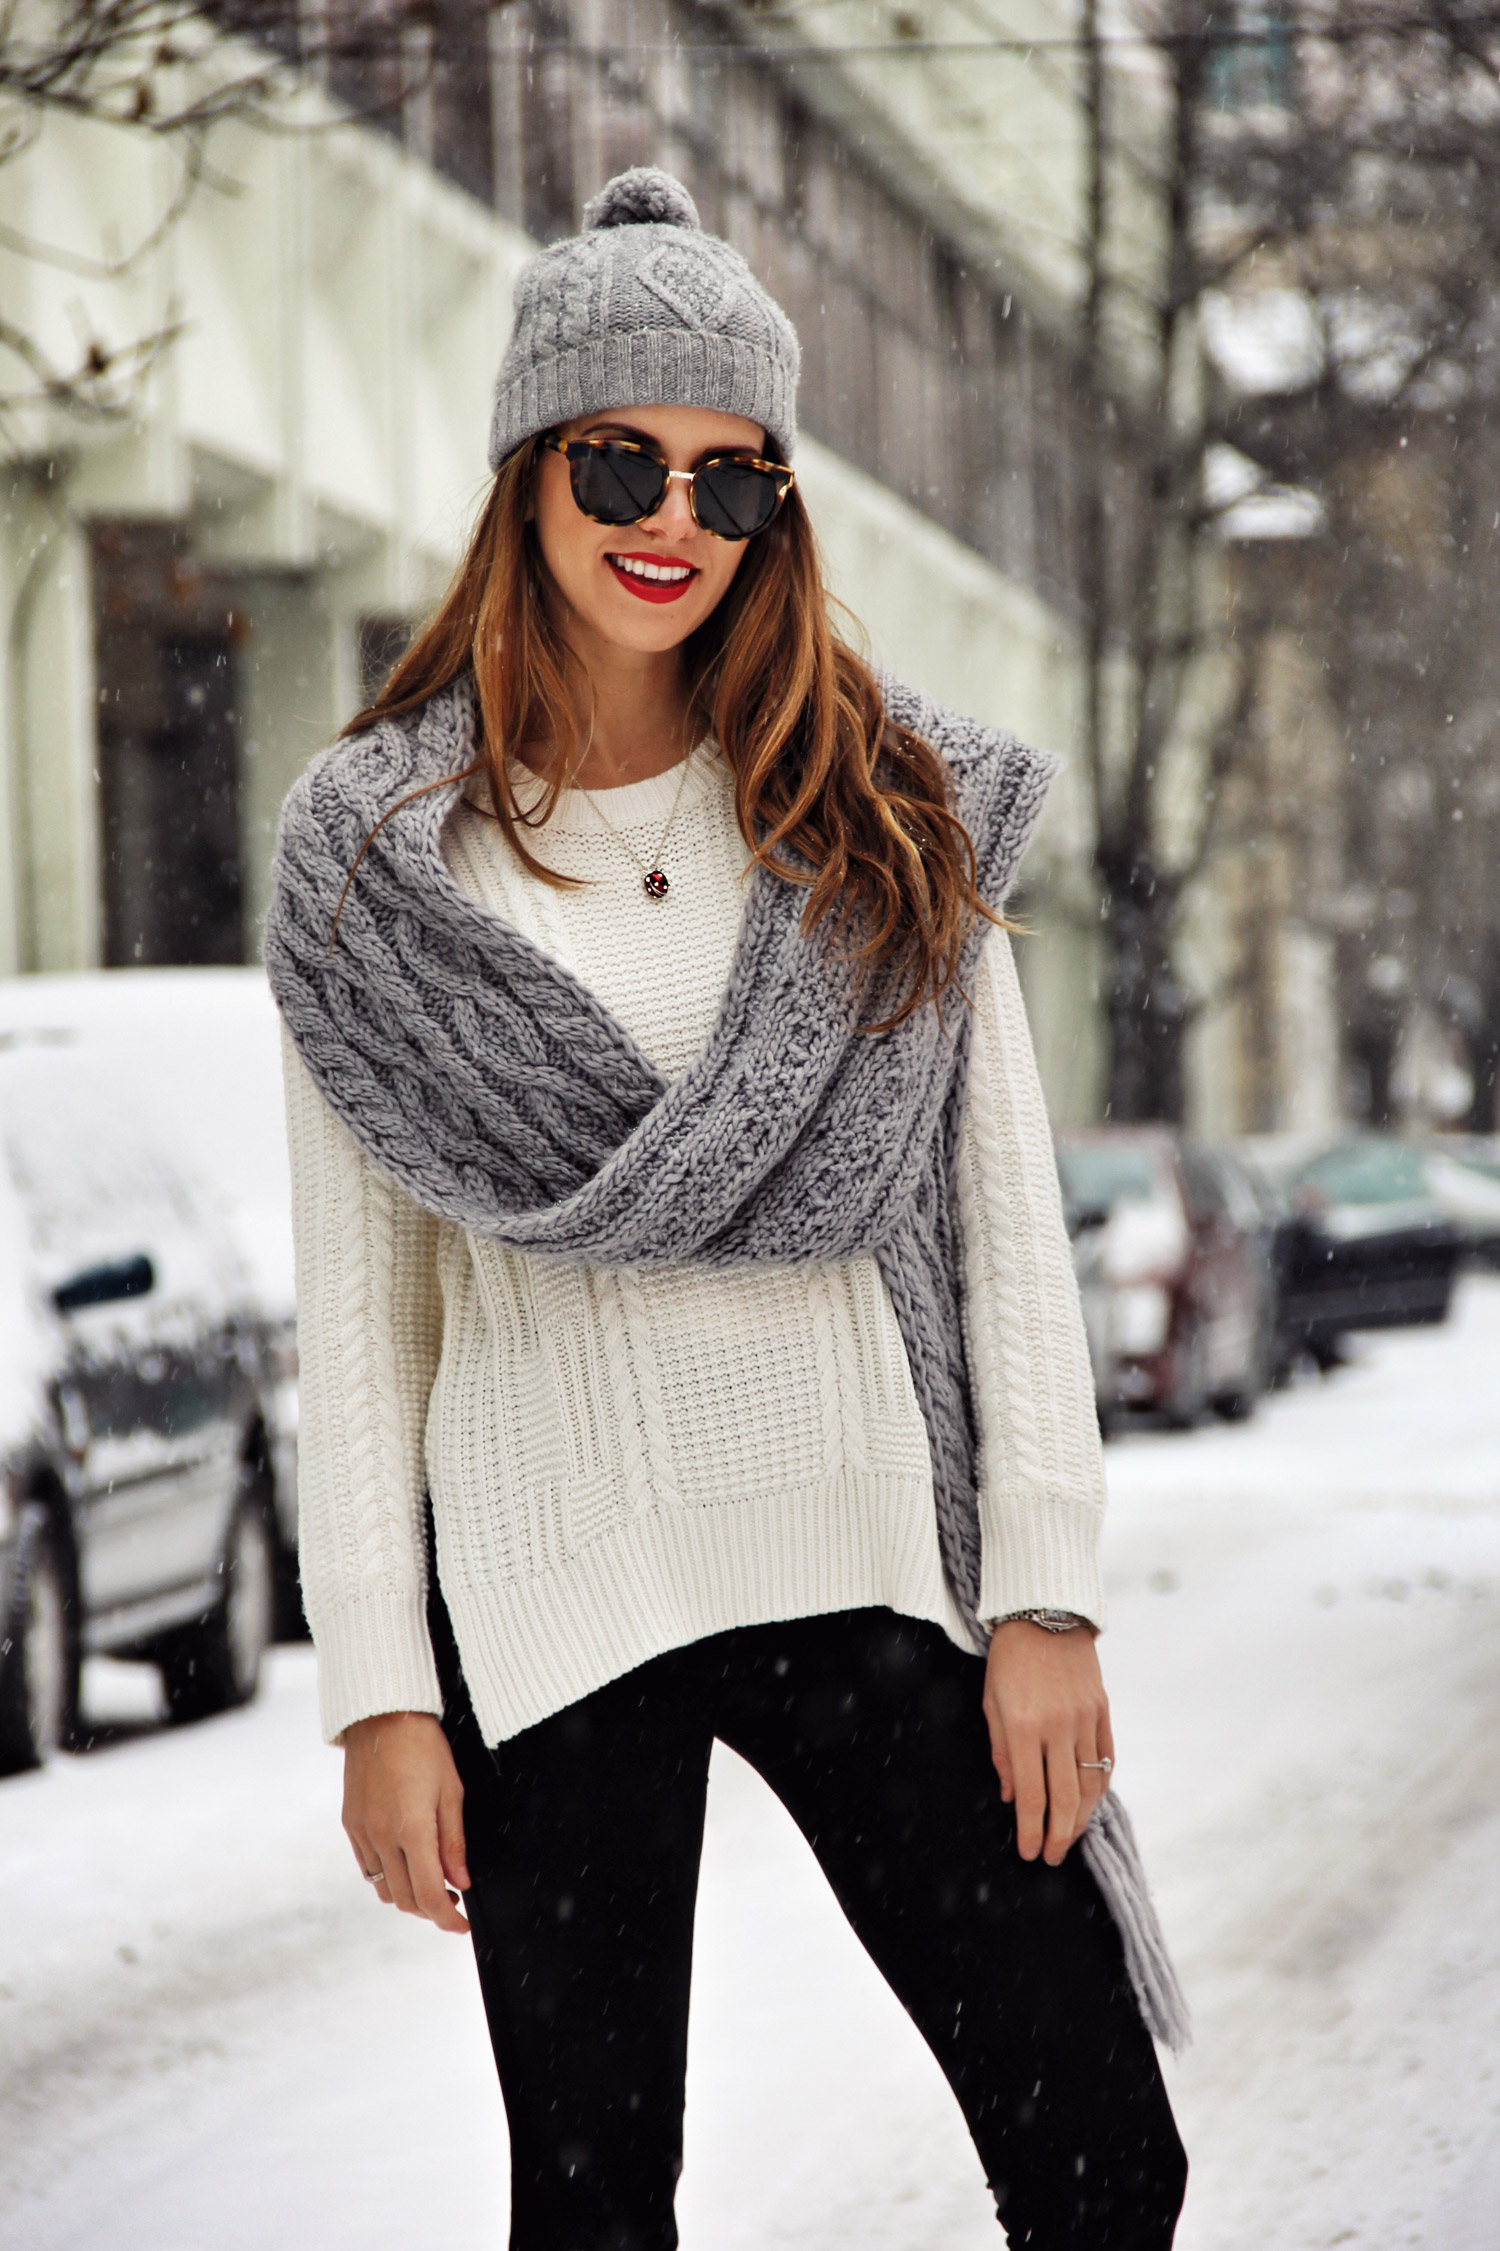 Winter Knits, The Charming Olive, Adelina Perrin